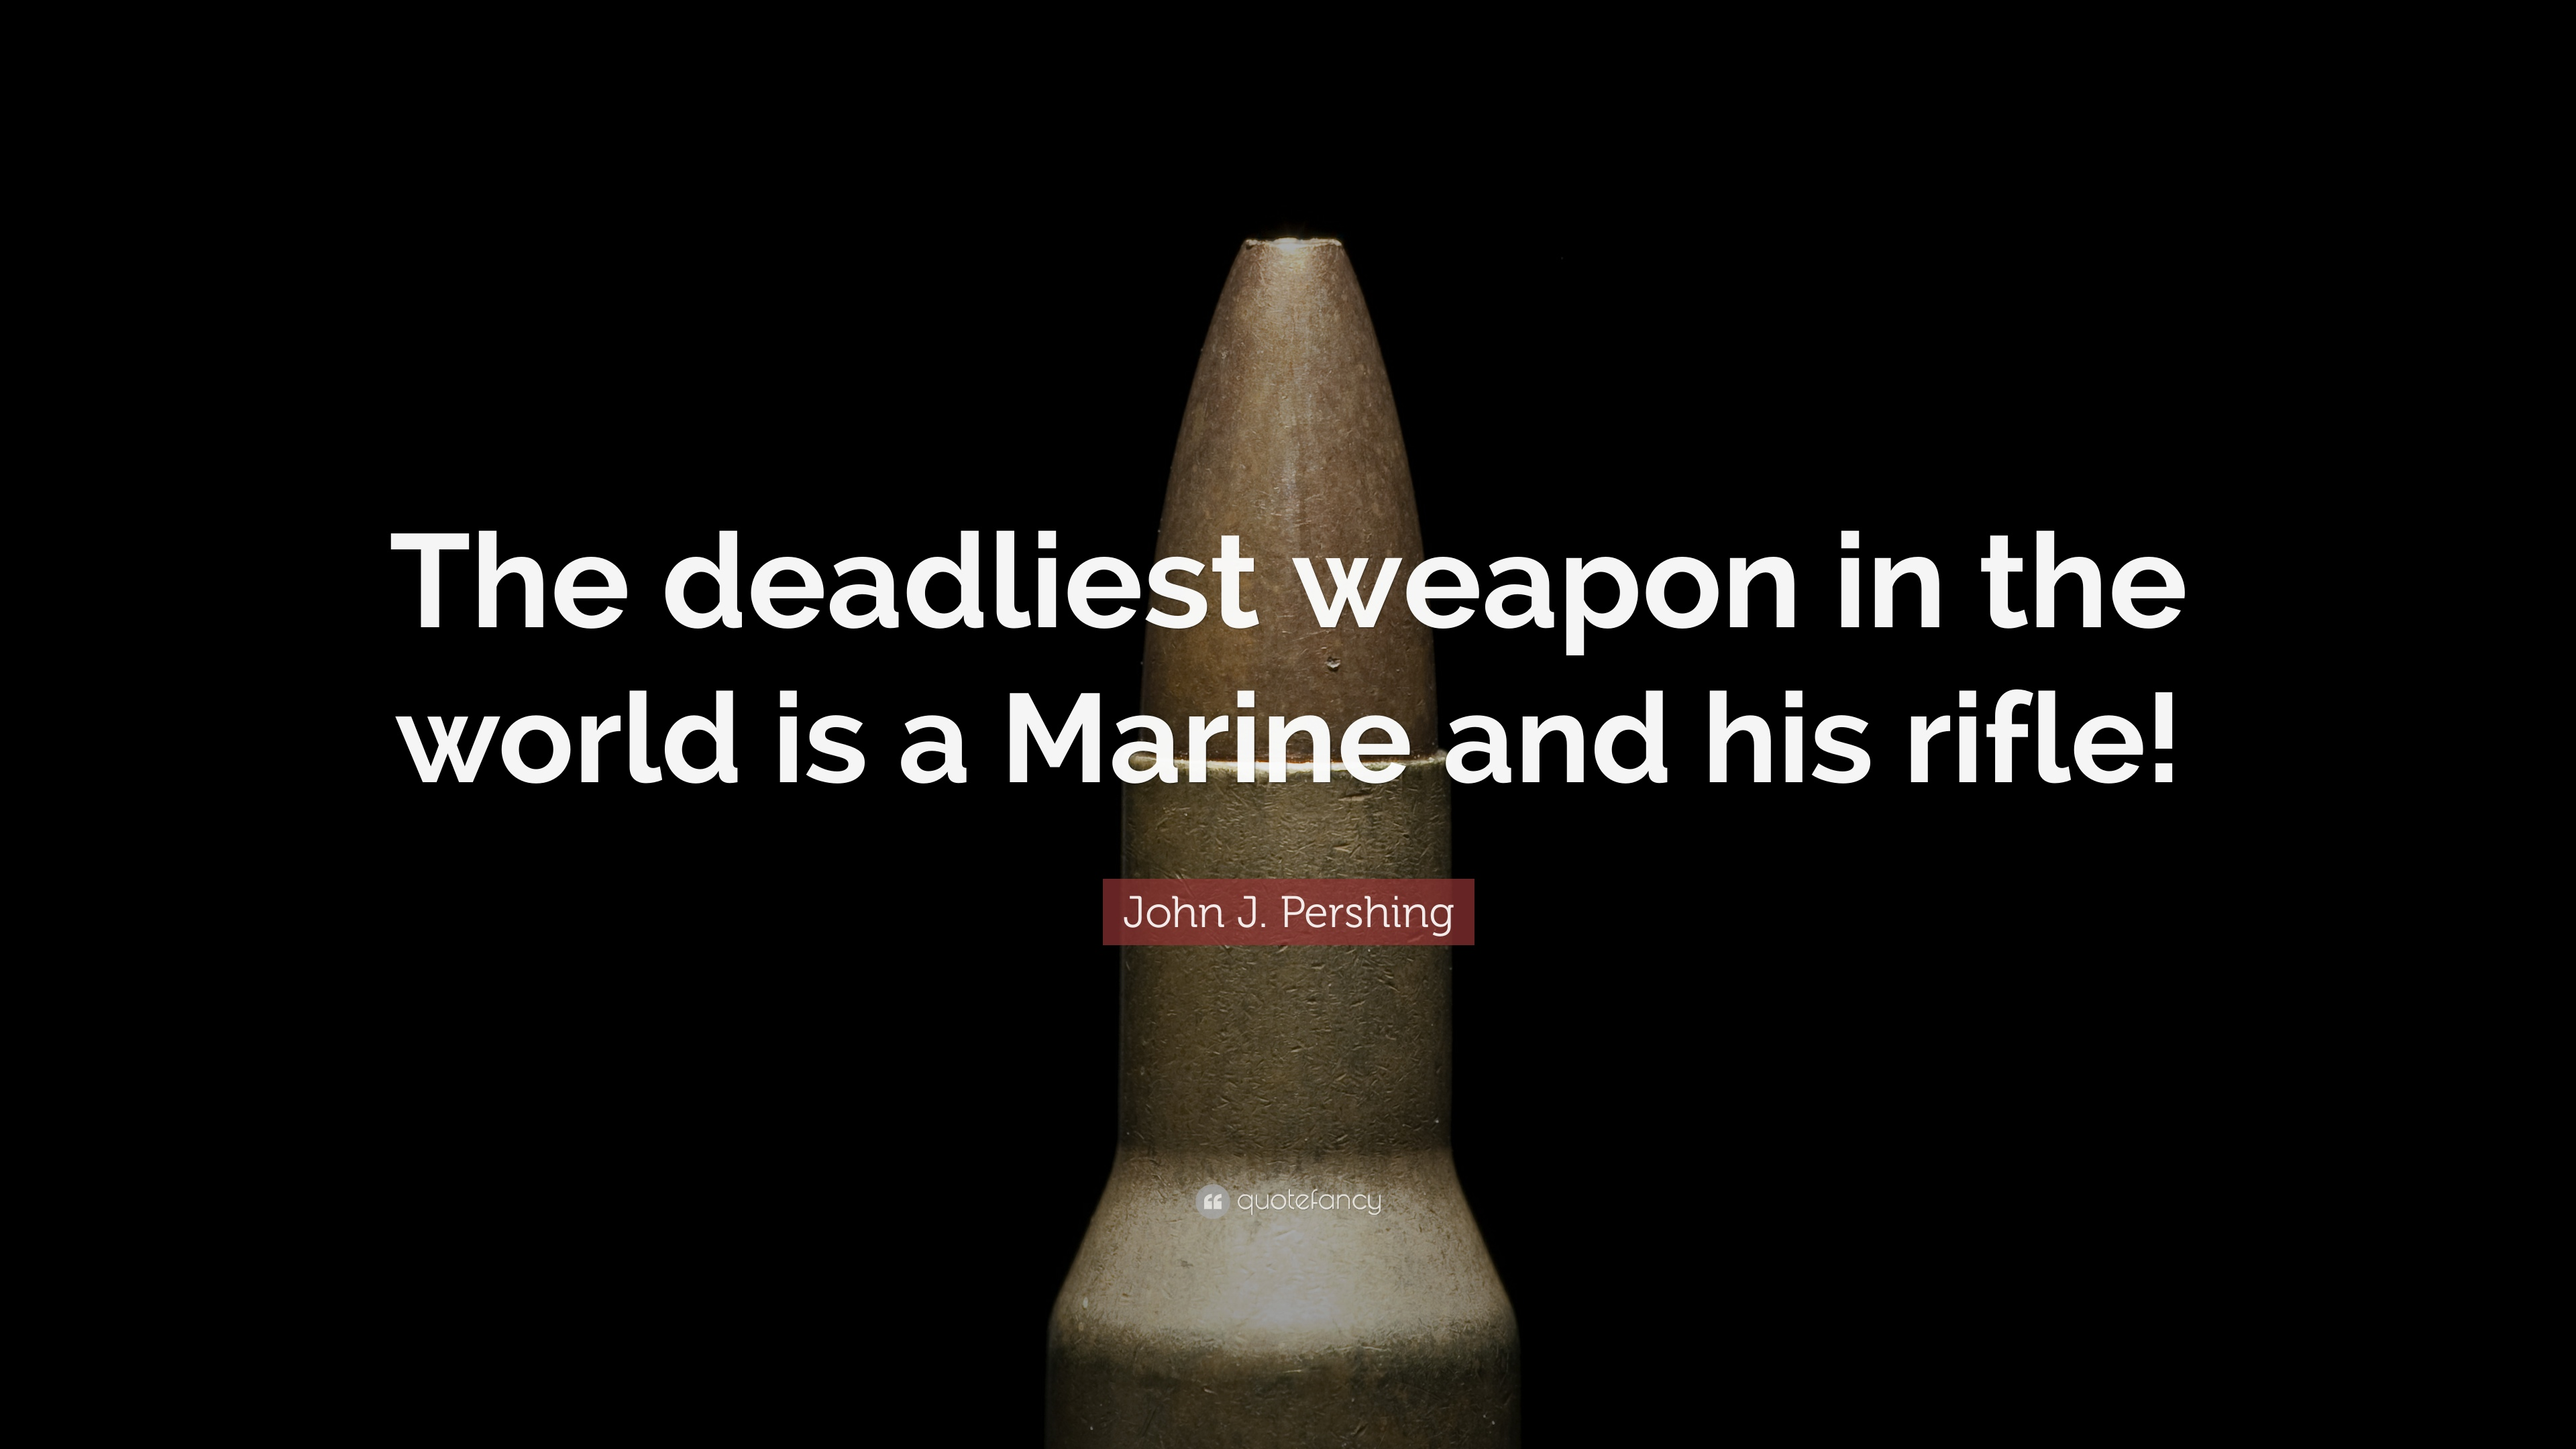 Marines Quotes John Jpershing Quotes 6 Wallpapers  Quotefancy